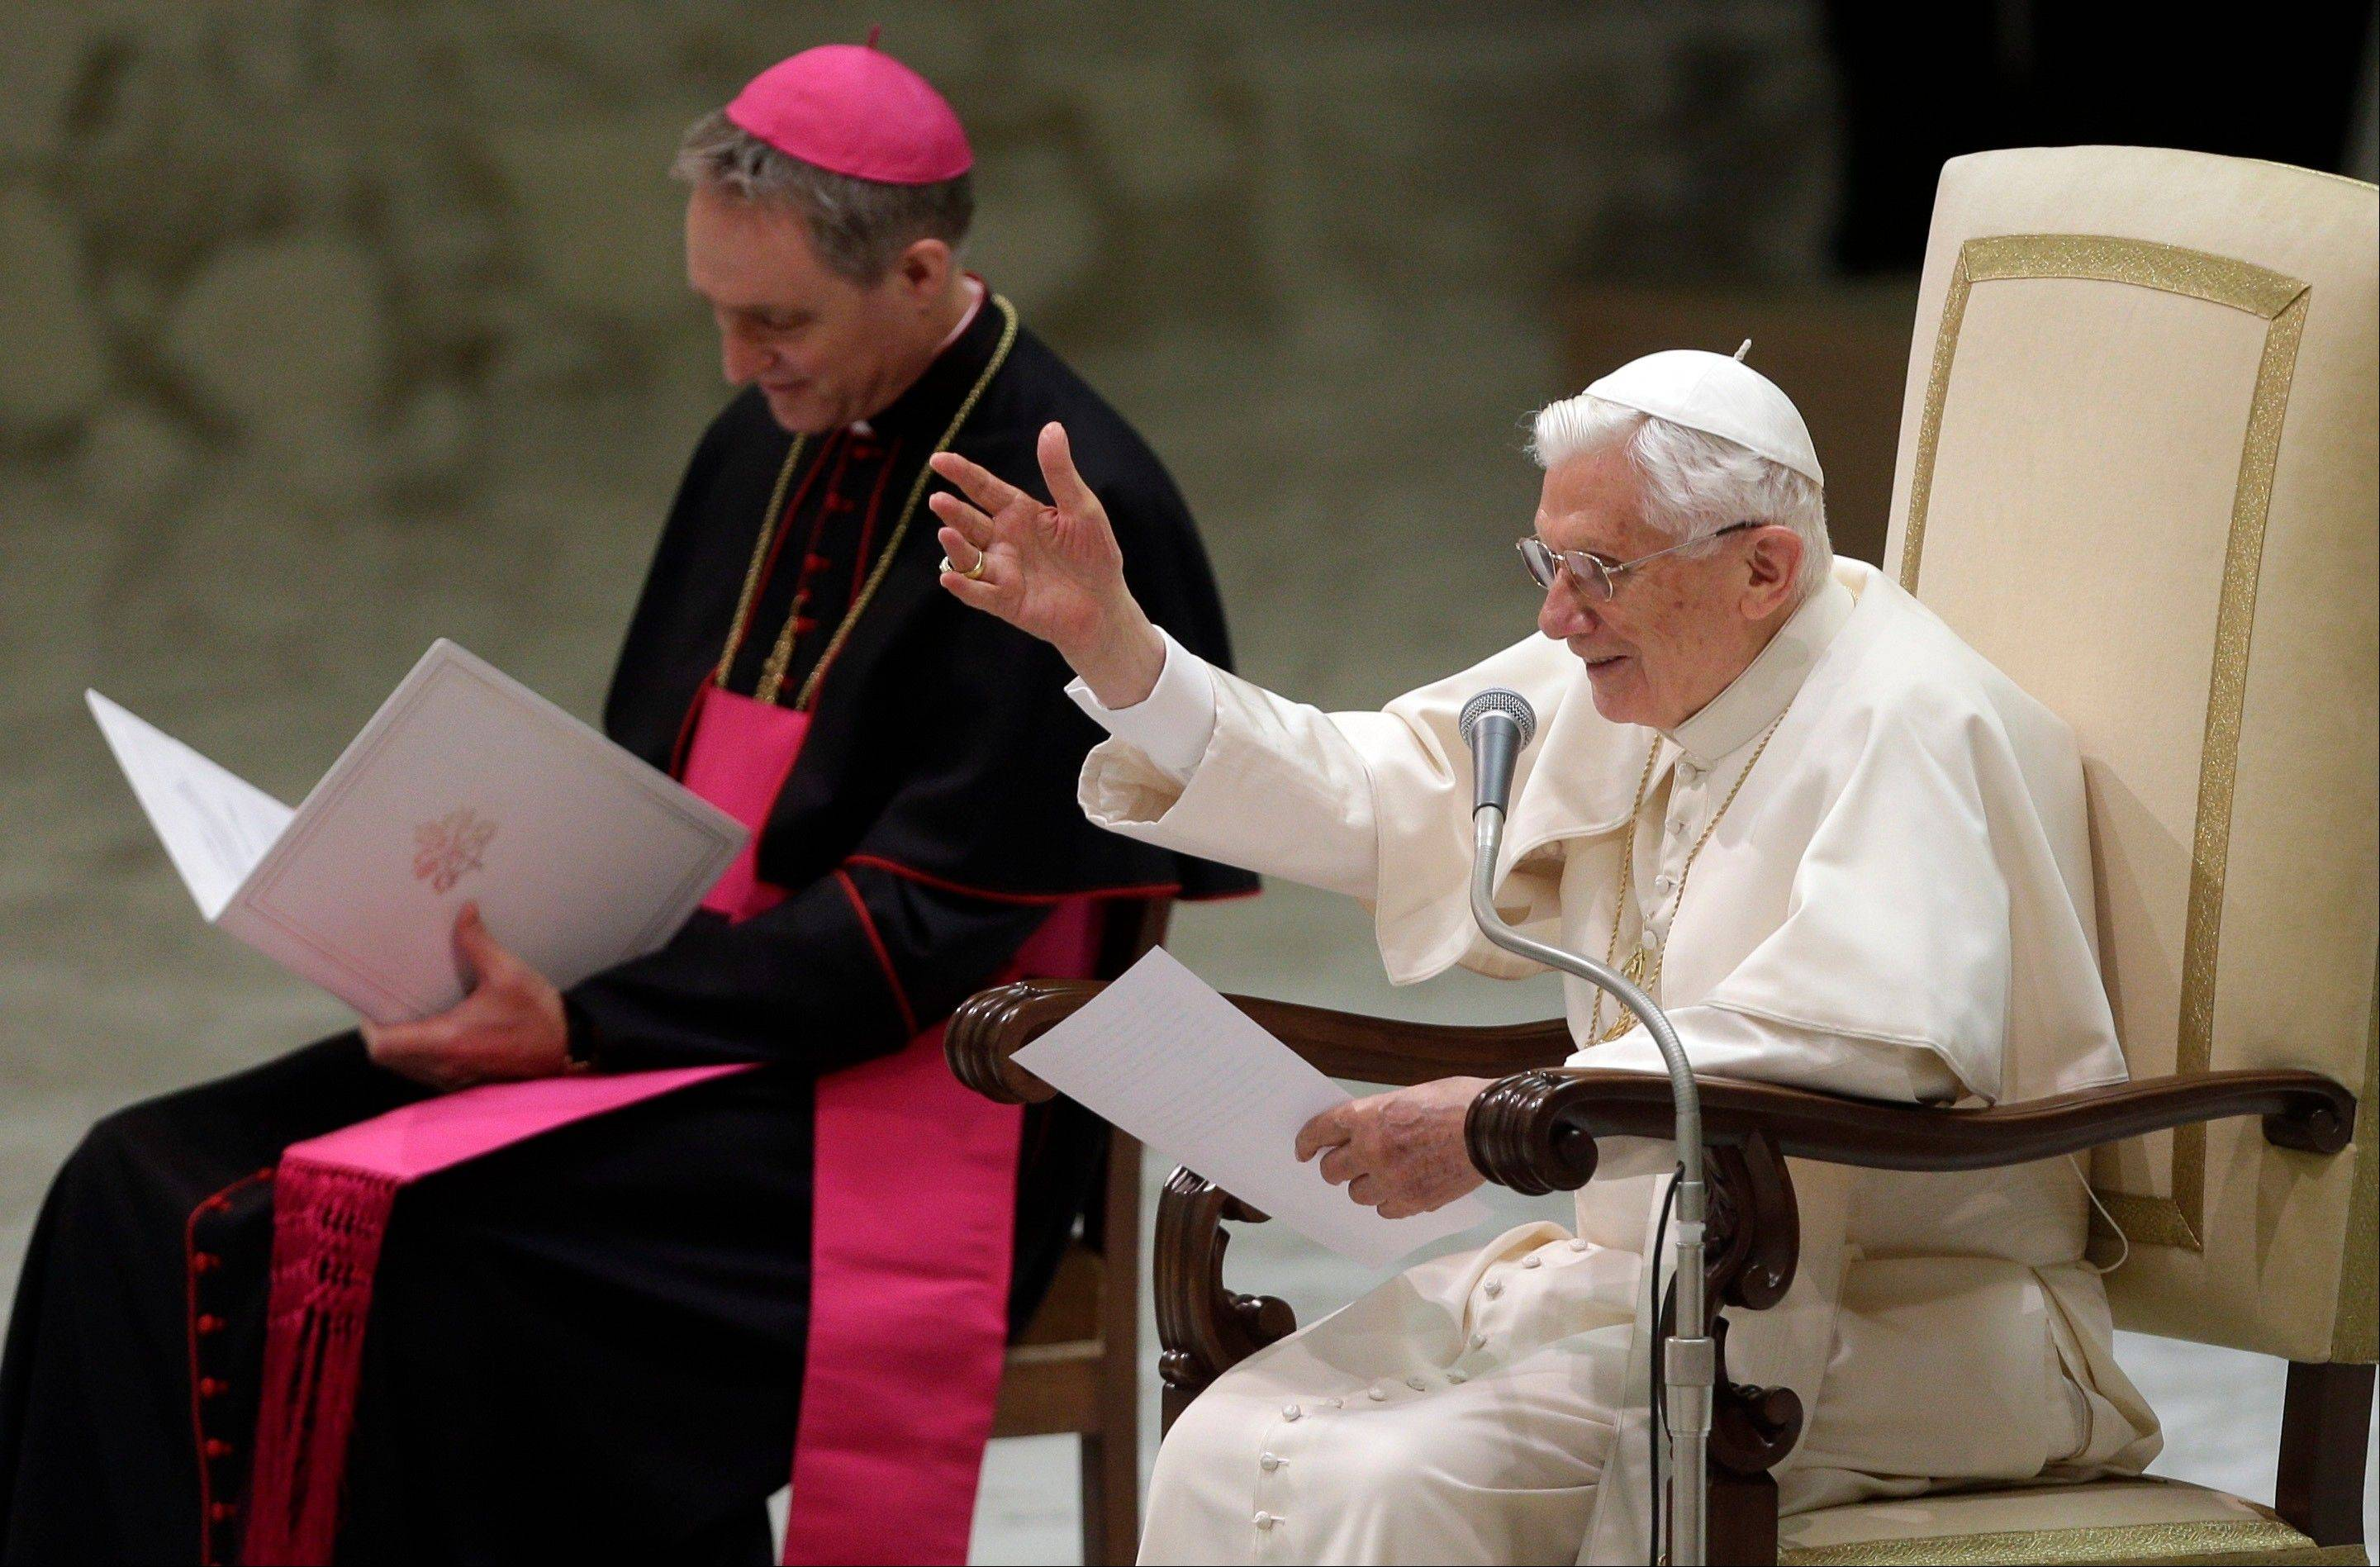 Pope Benedict XVI is flanked by his private secretary Archbishop Georg Ganswein as he reads a message during his weekly general audience at the Vatican Wednesday. Looking tired but serene, Pope Benedict XVI told thousands of faithful Wednesday he was stepping down for �the good of the church.�